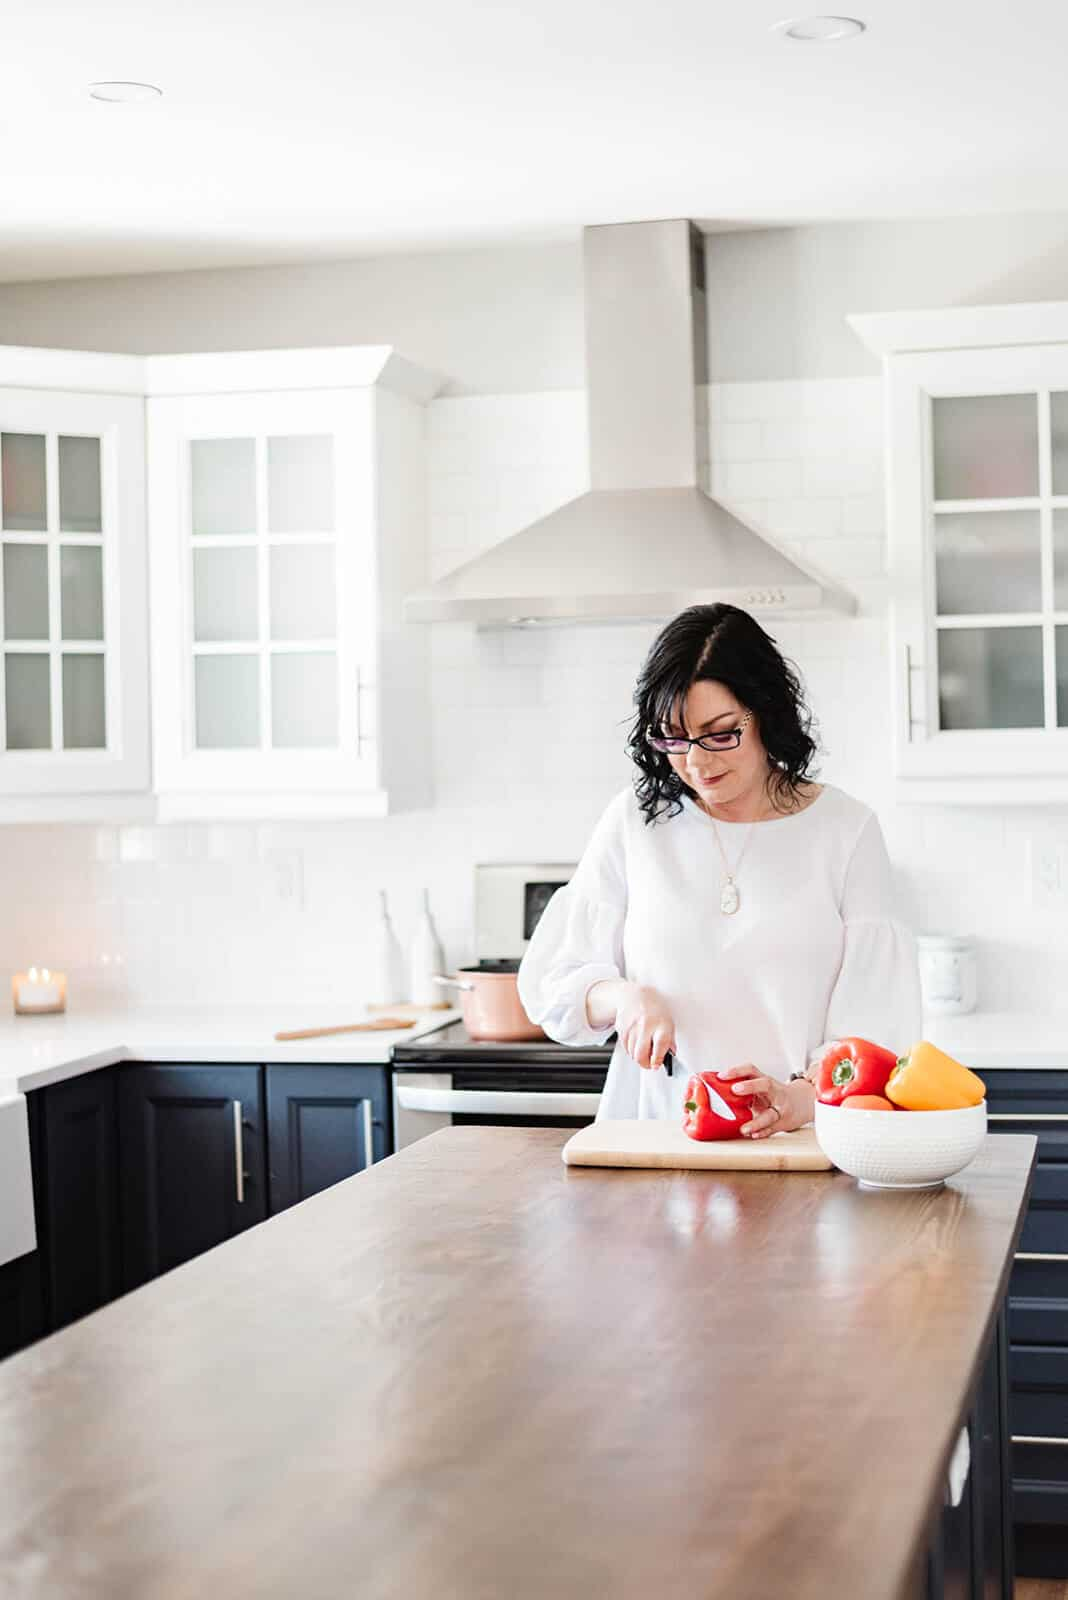 Food blogger Stacie Vaughan chopping a red pepper on a counter.